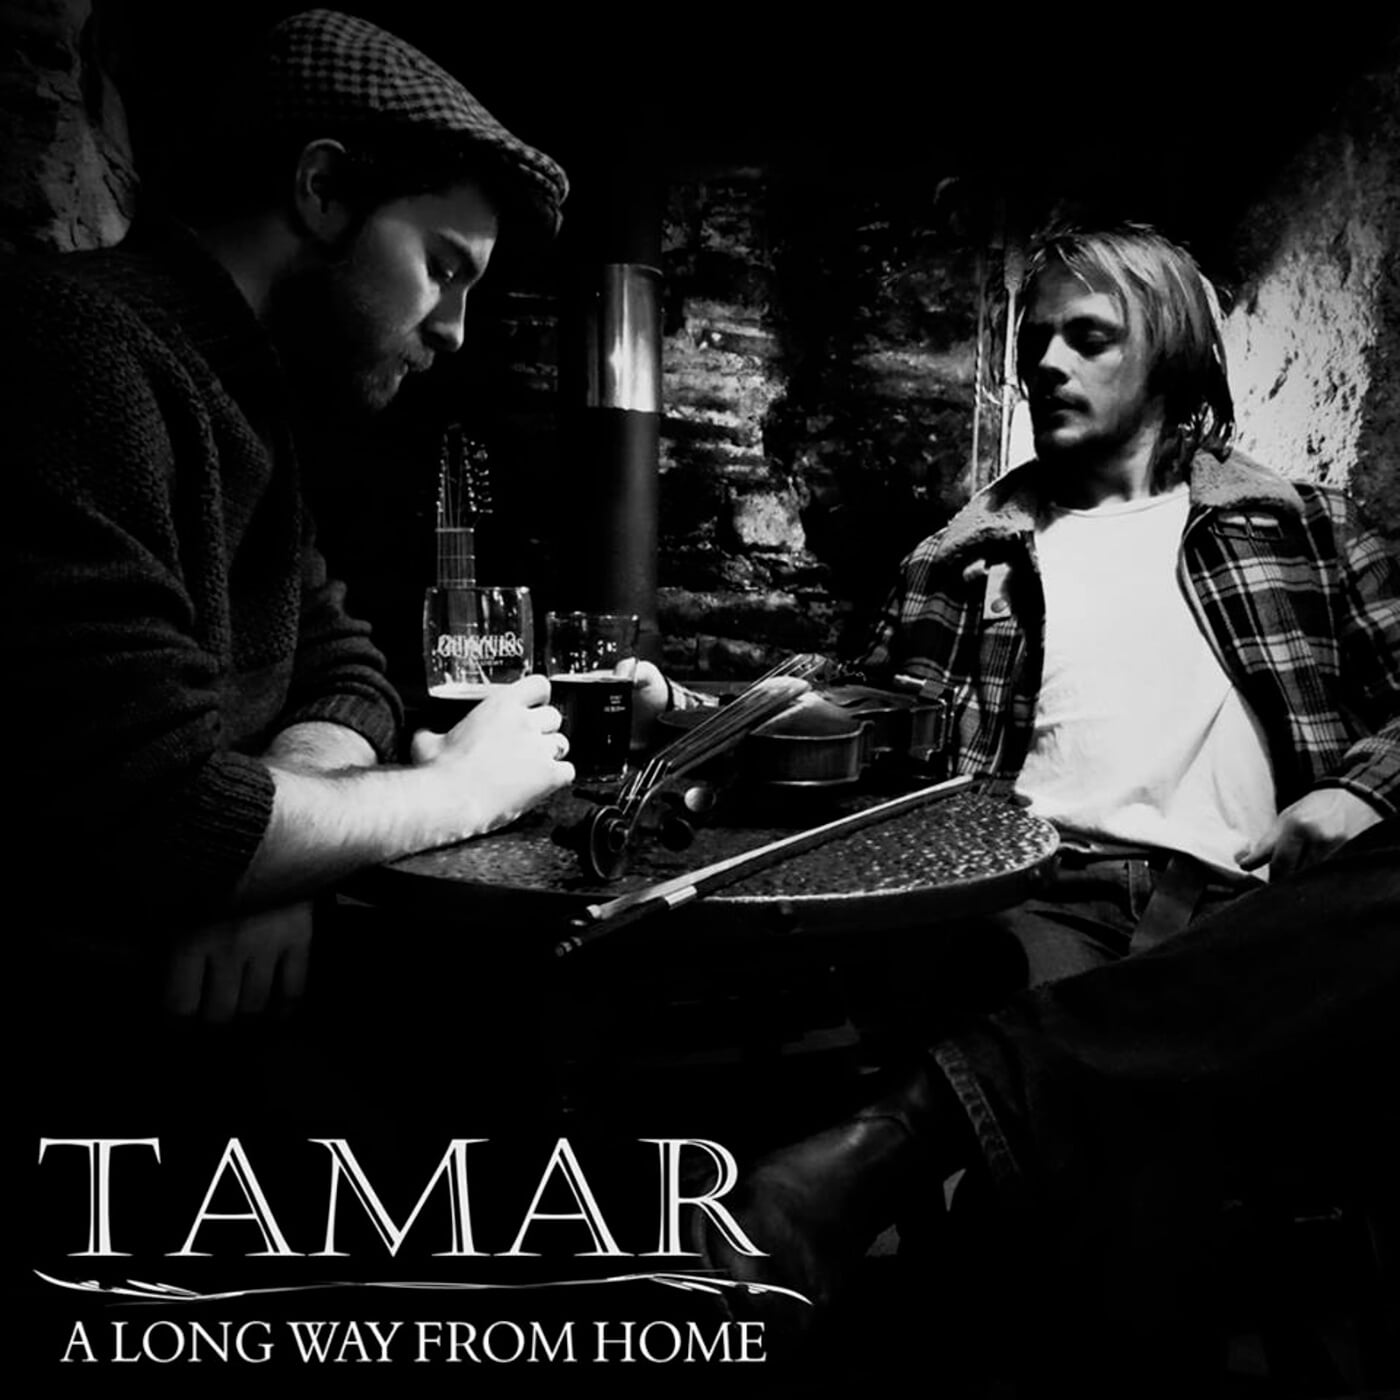 Tamar - A Long Way From Home